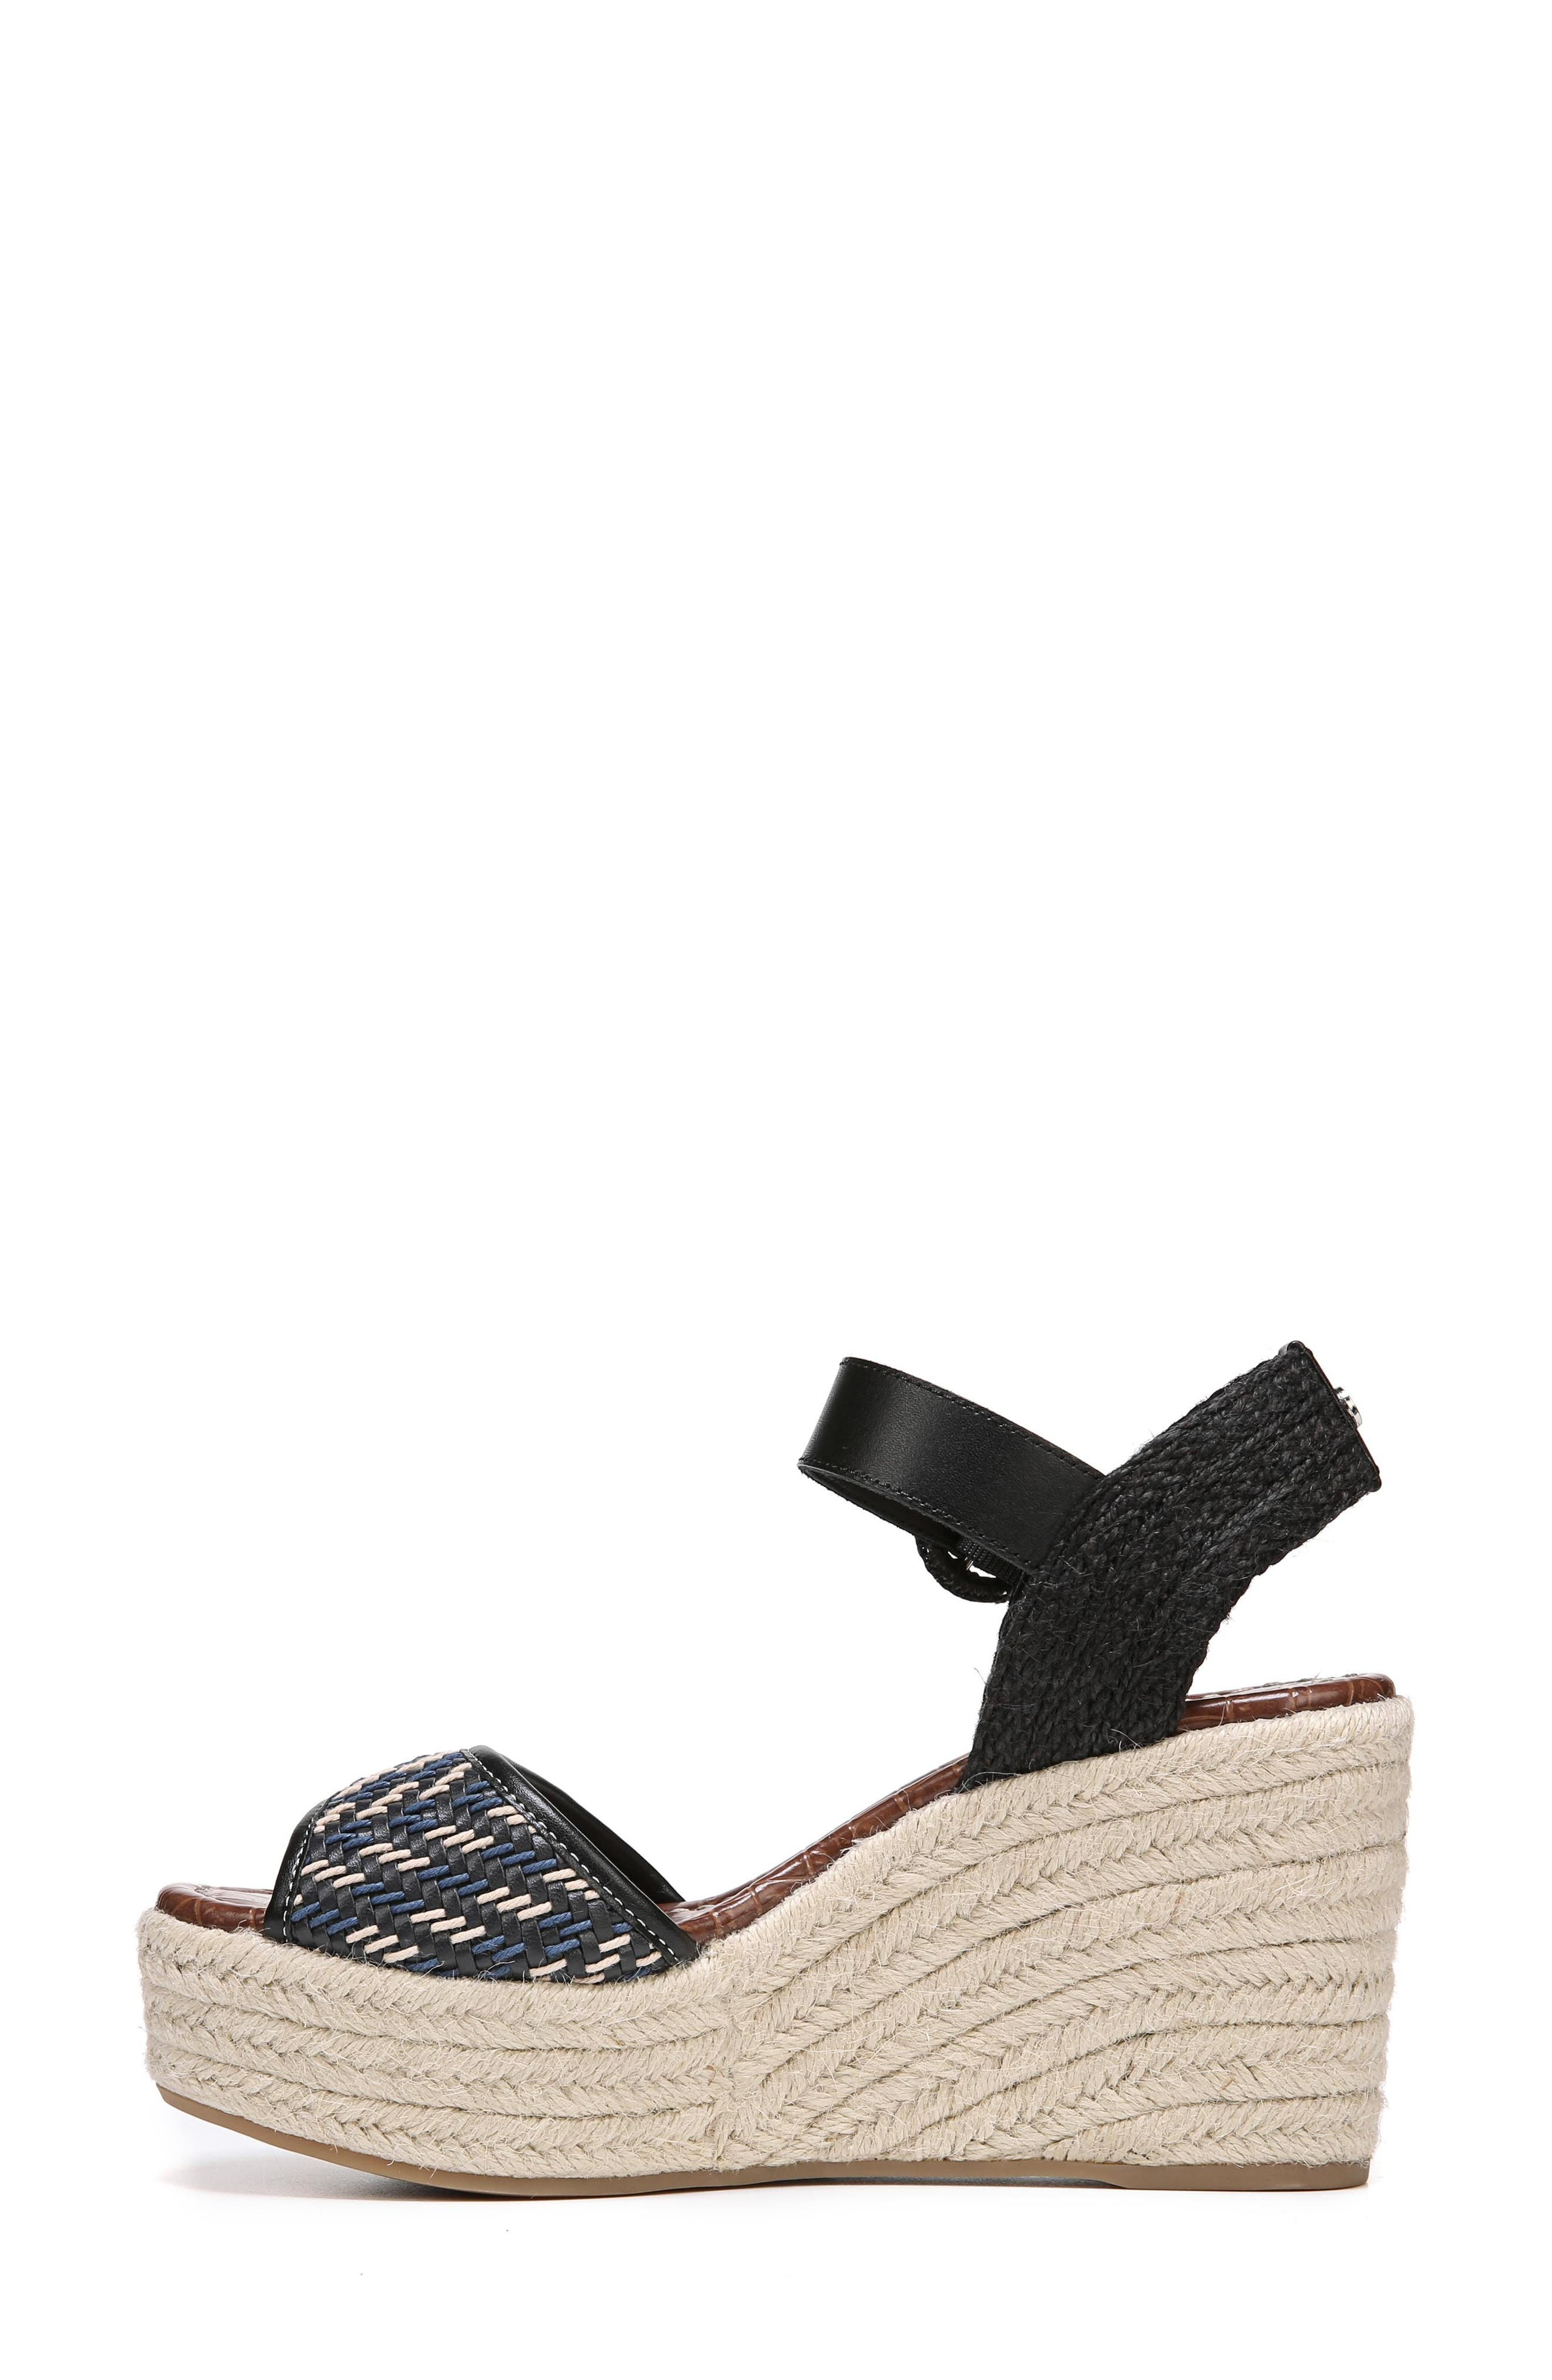 Dimitree Wedge,                             Alternate thumbnail 4, color,                             NAVY/ BLACK